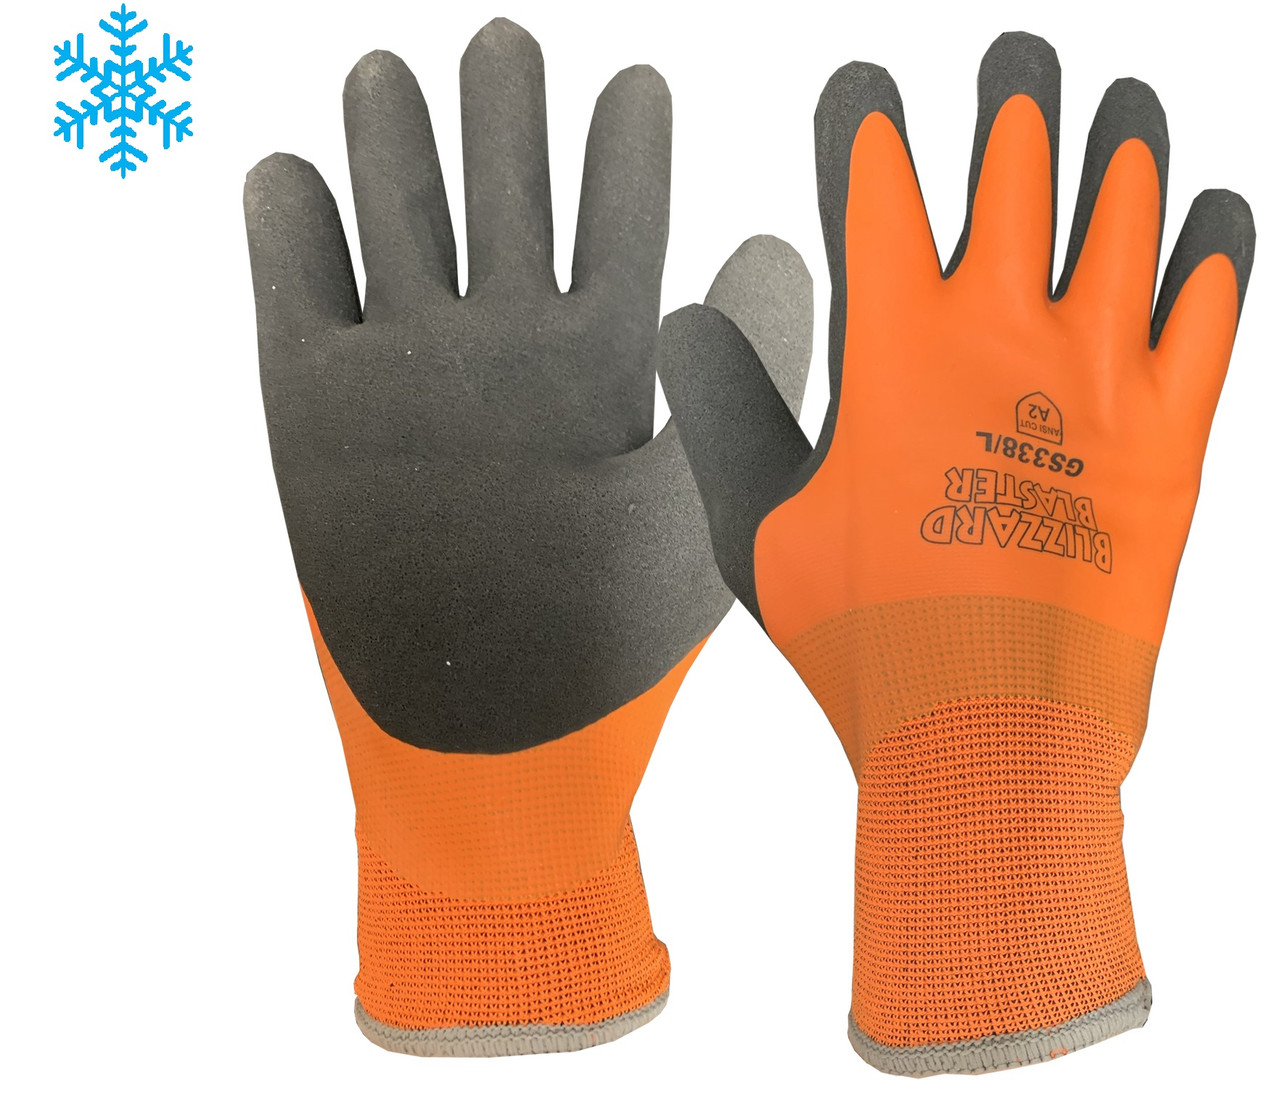 Blizzard Blaster- Insulated Double-Dipped  Latex Coated Water Resistance Palm  ## GS338 ##